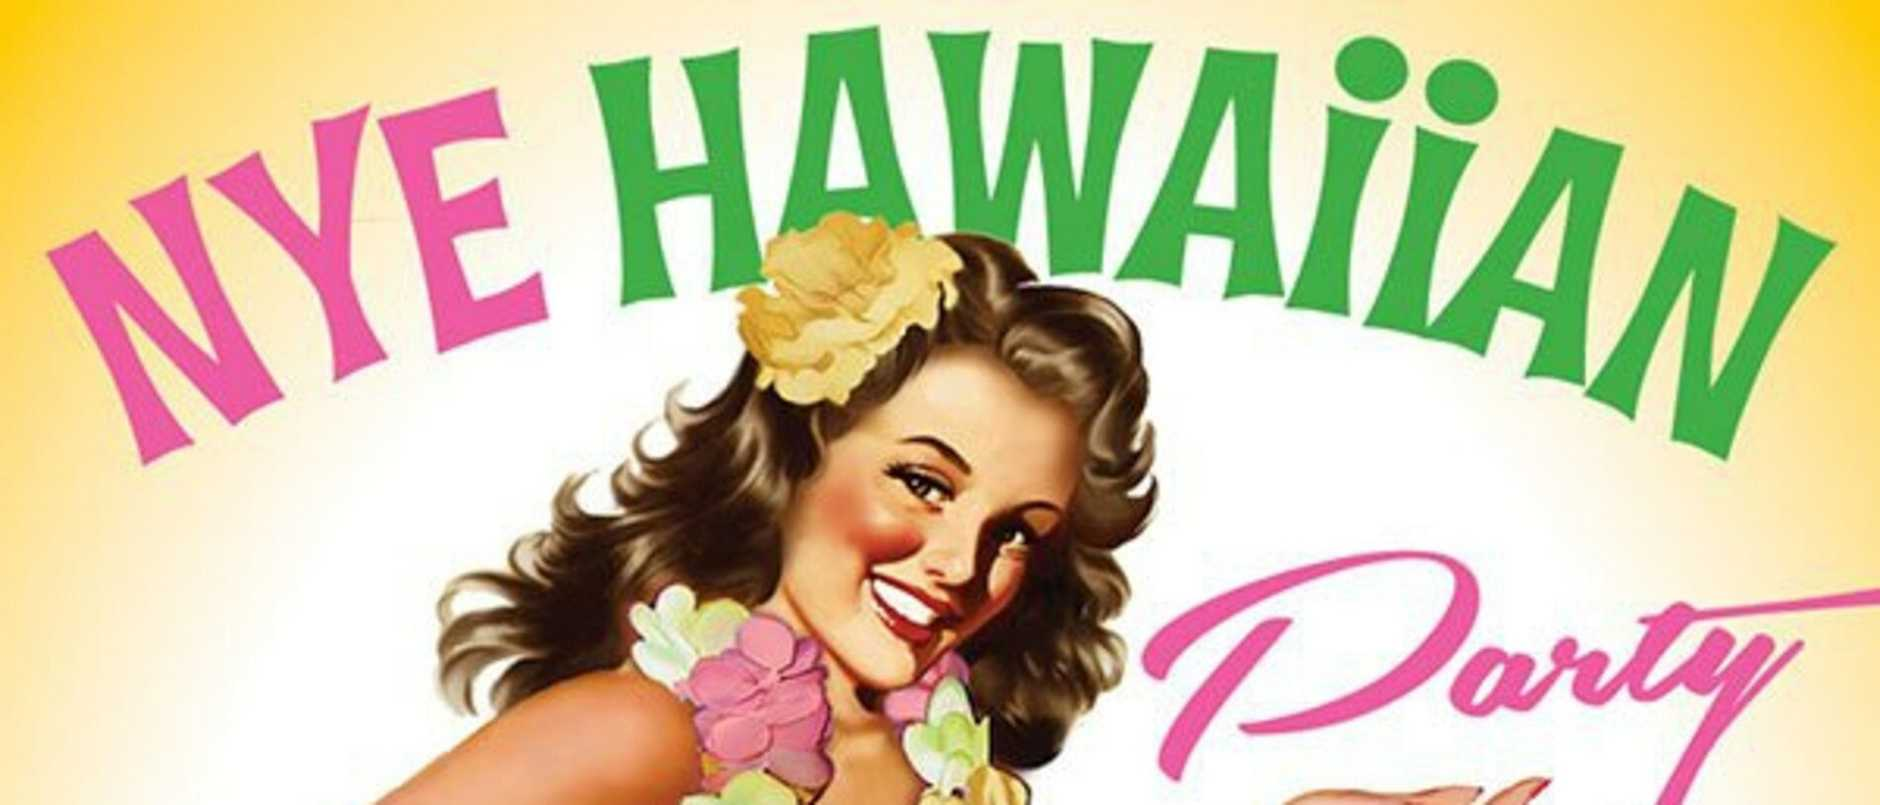 Yeppoon's Pacific Hotel is hosting a hawaiian themed event.